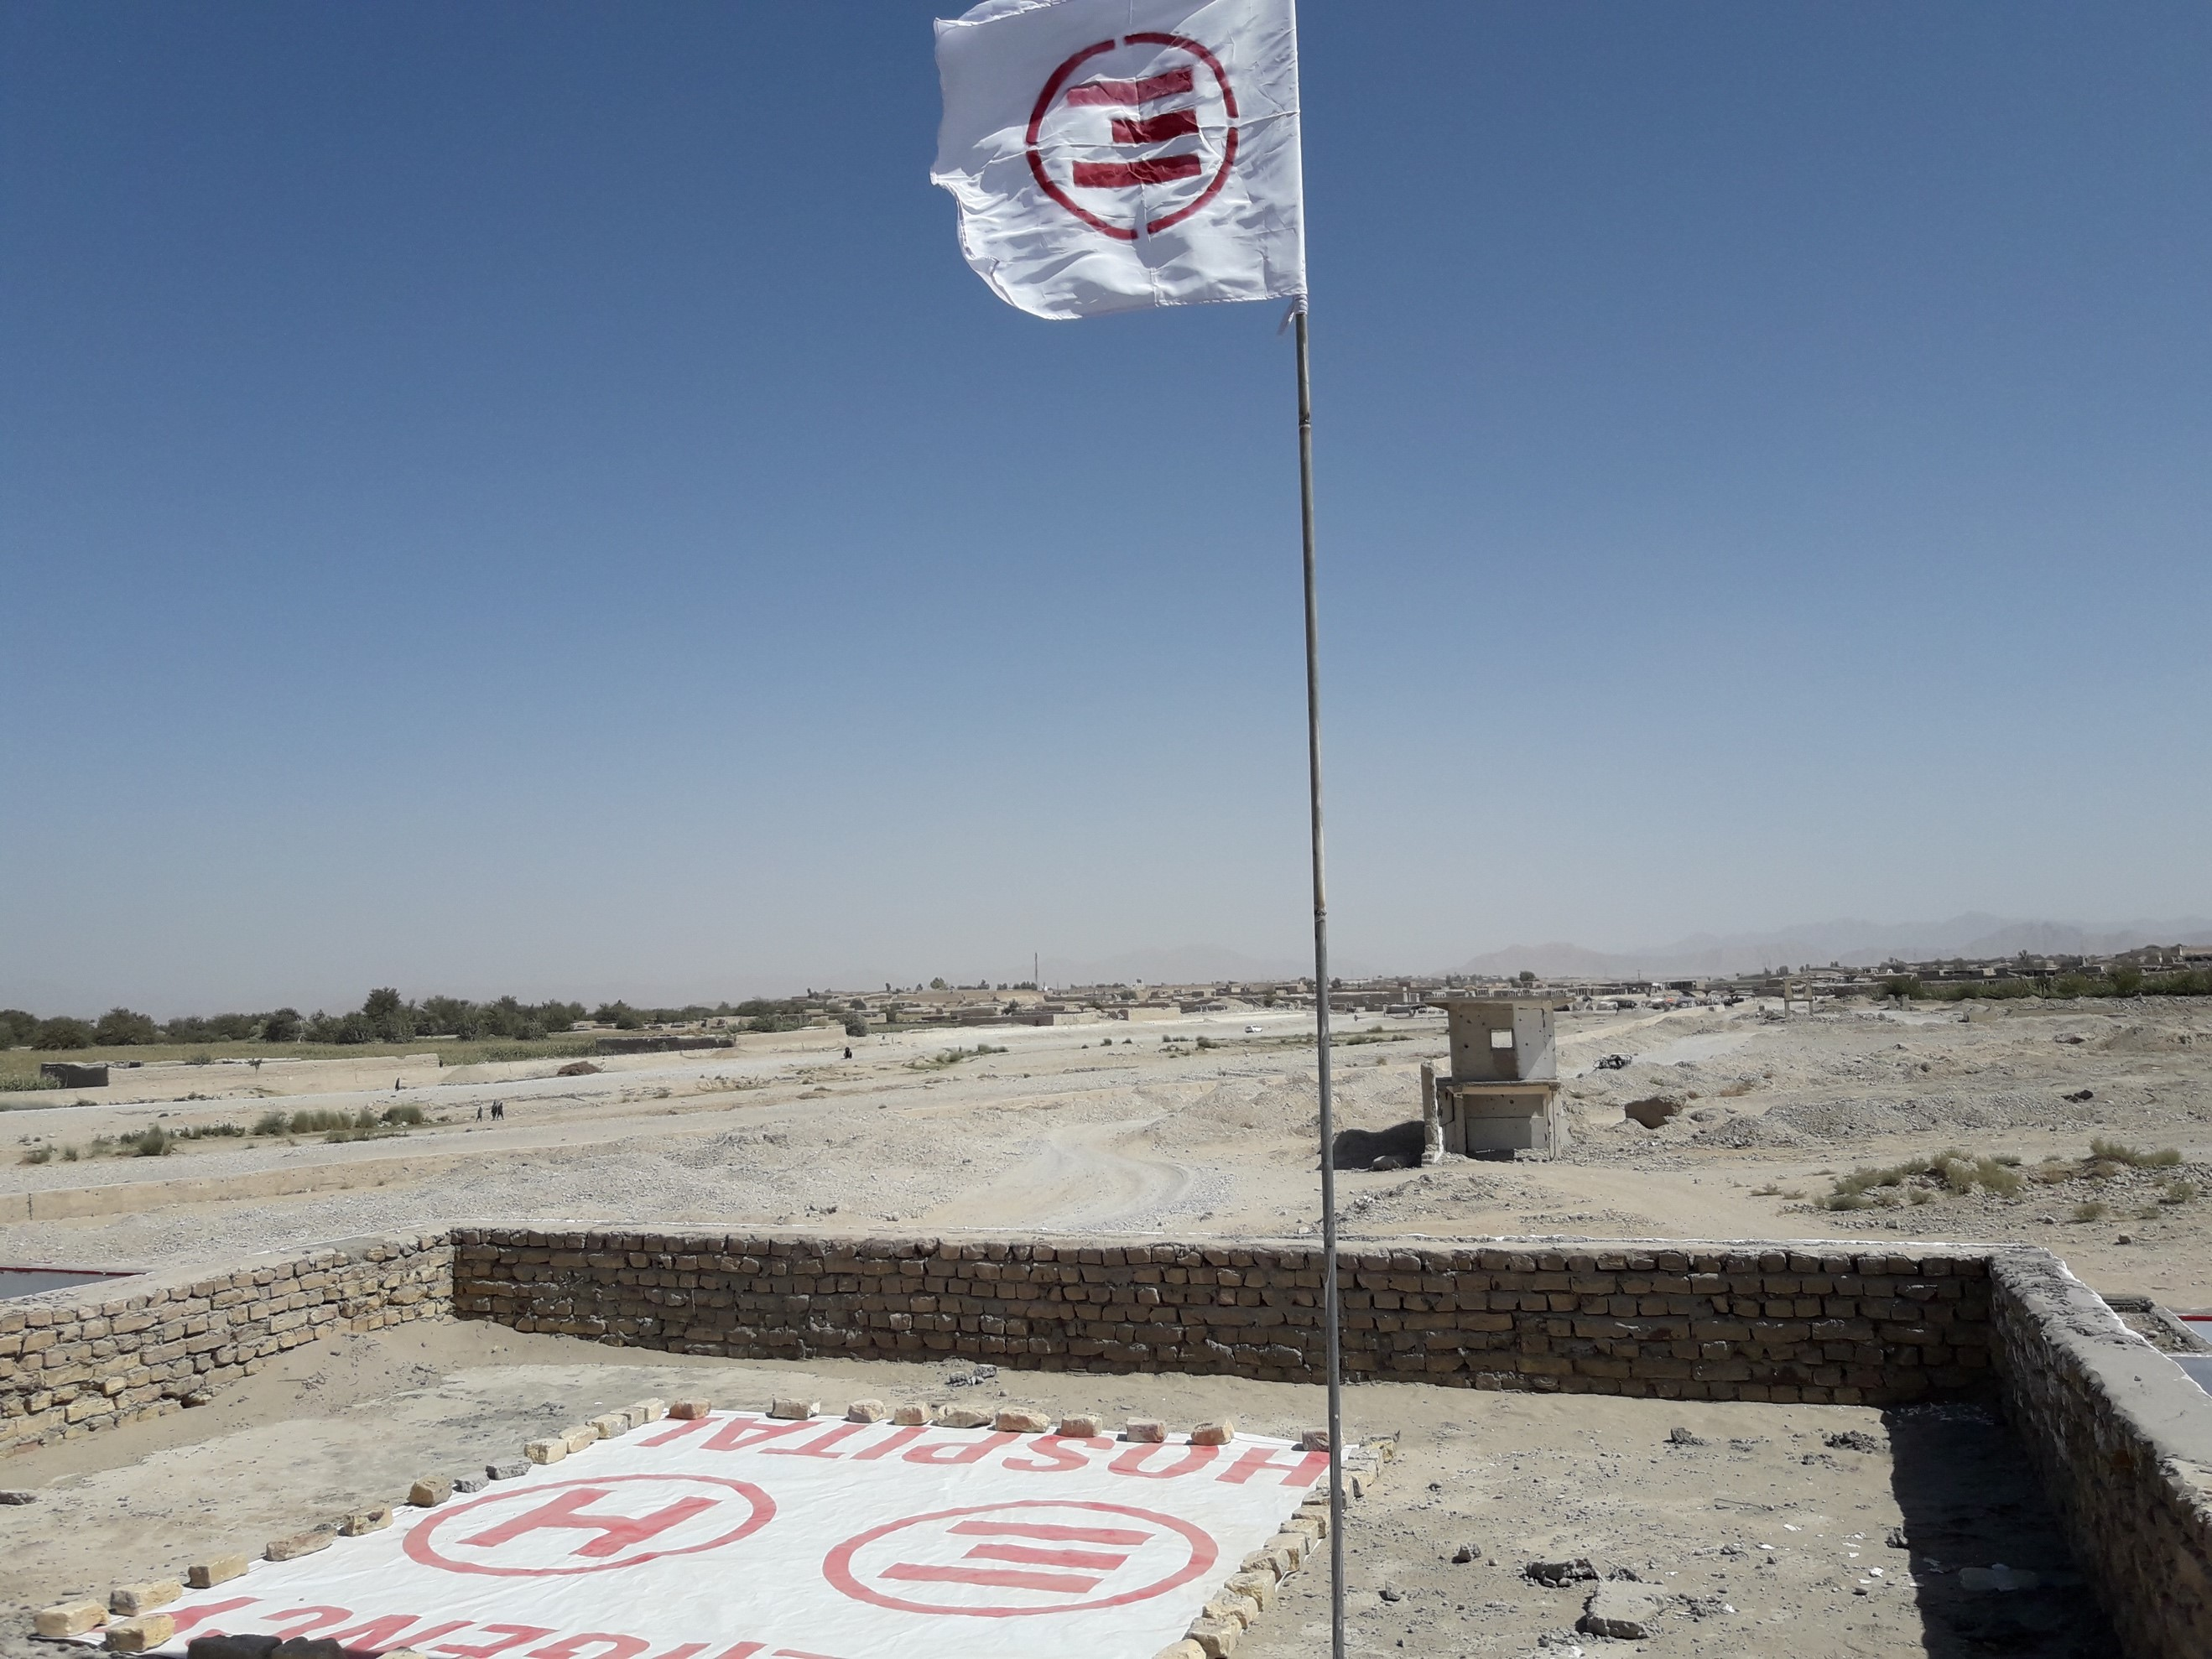 Our flag from our First Aid Post in Sangin